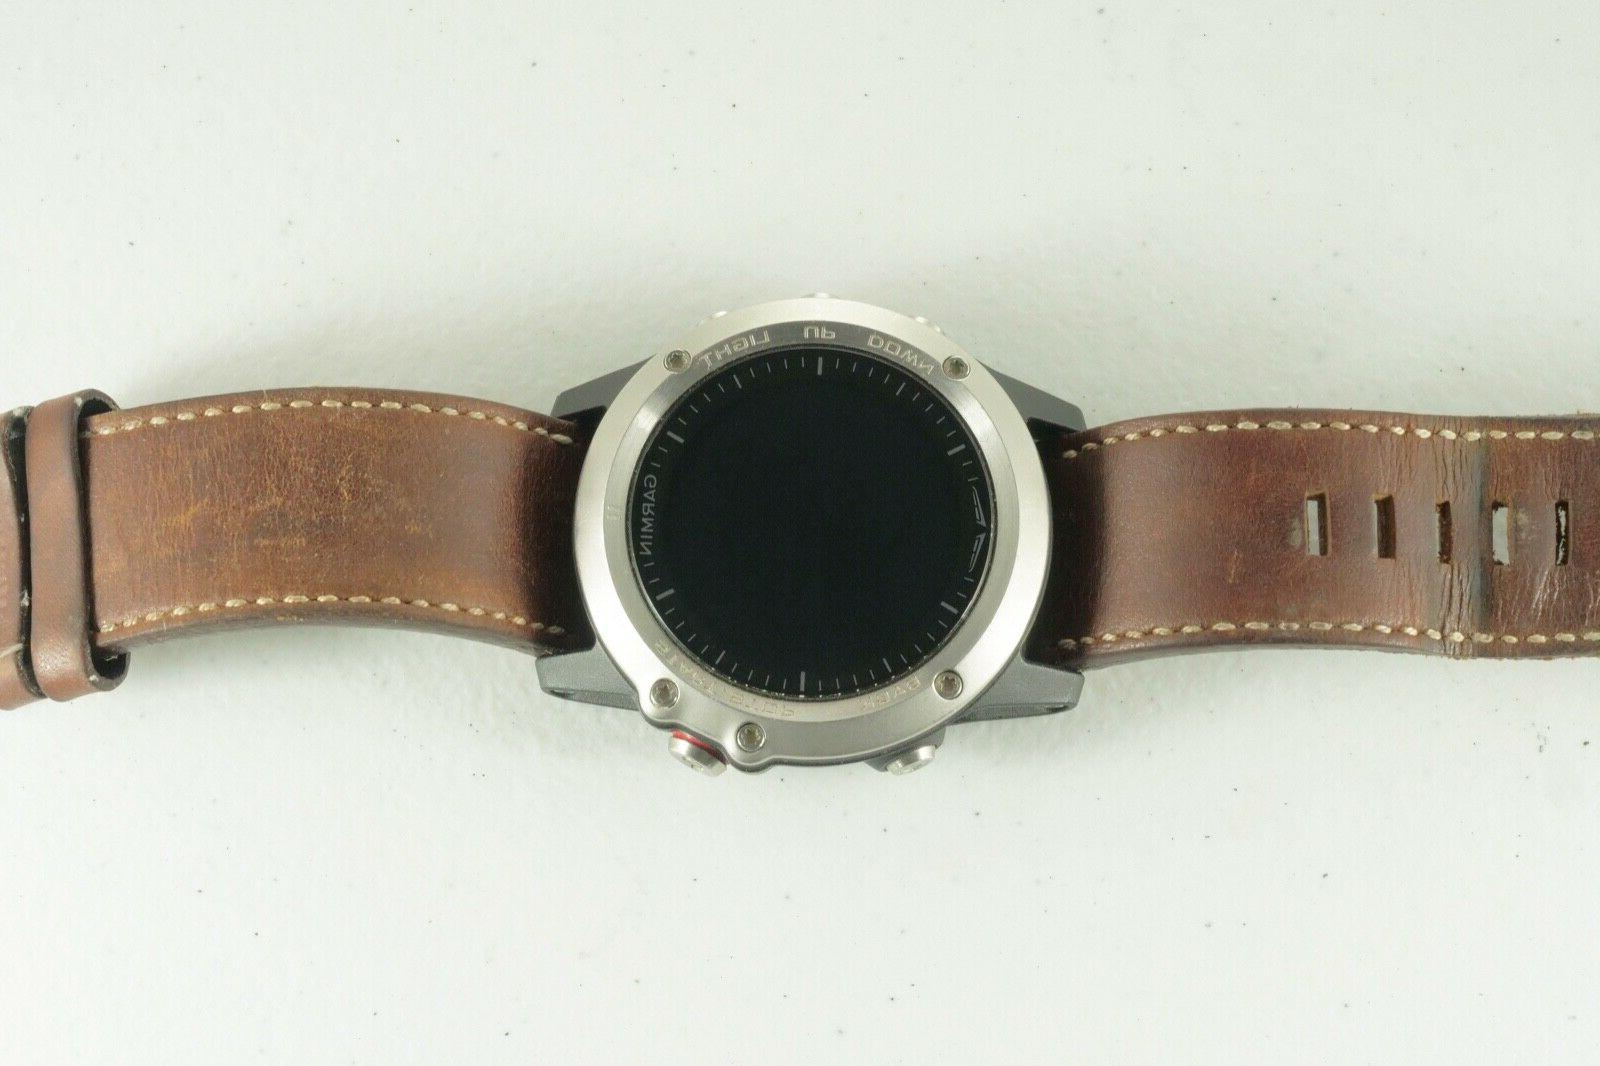 Garmin Pilot Watch Leather Band & Accessories Great Cond!